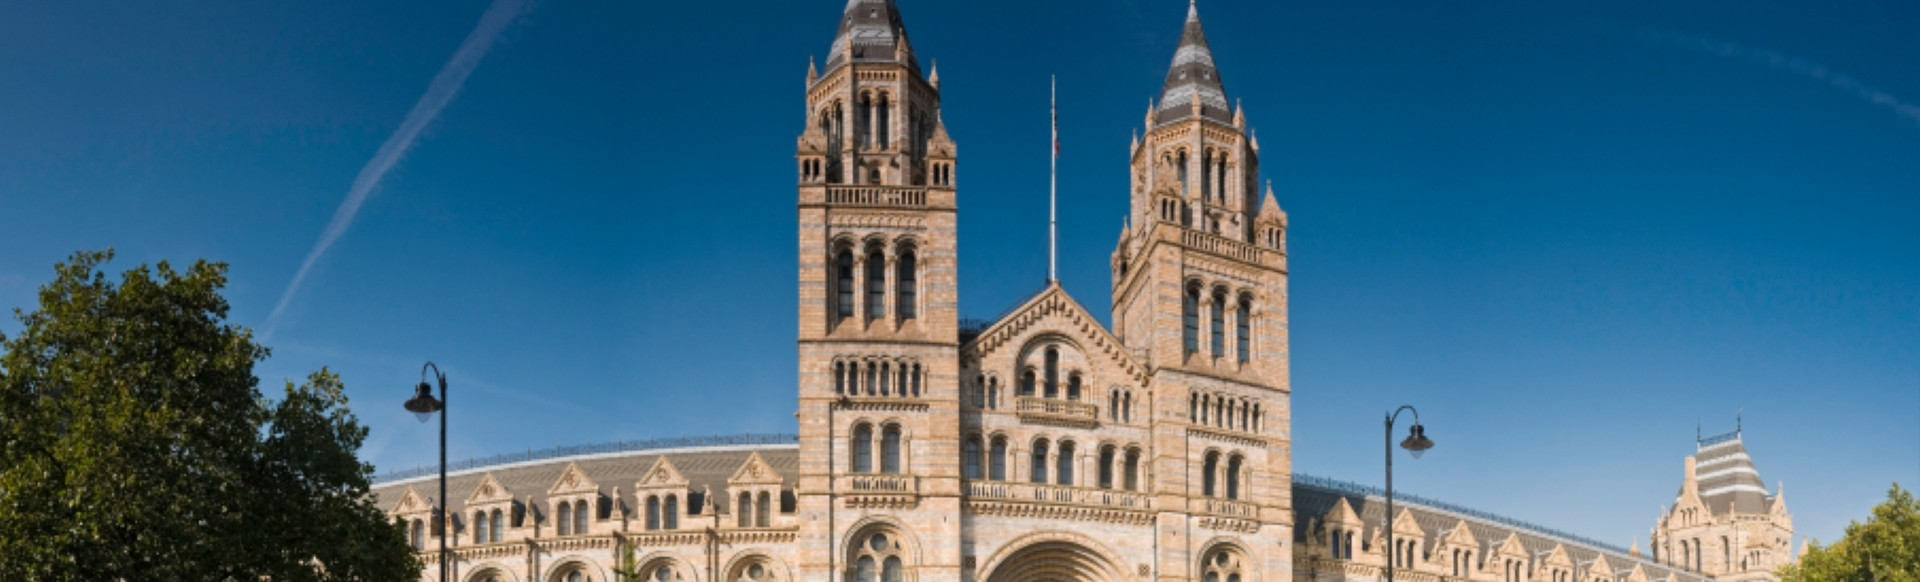 The main entrance of the Natural History Museum in London on a beautifully sunny day.